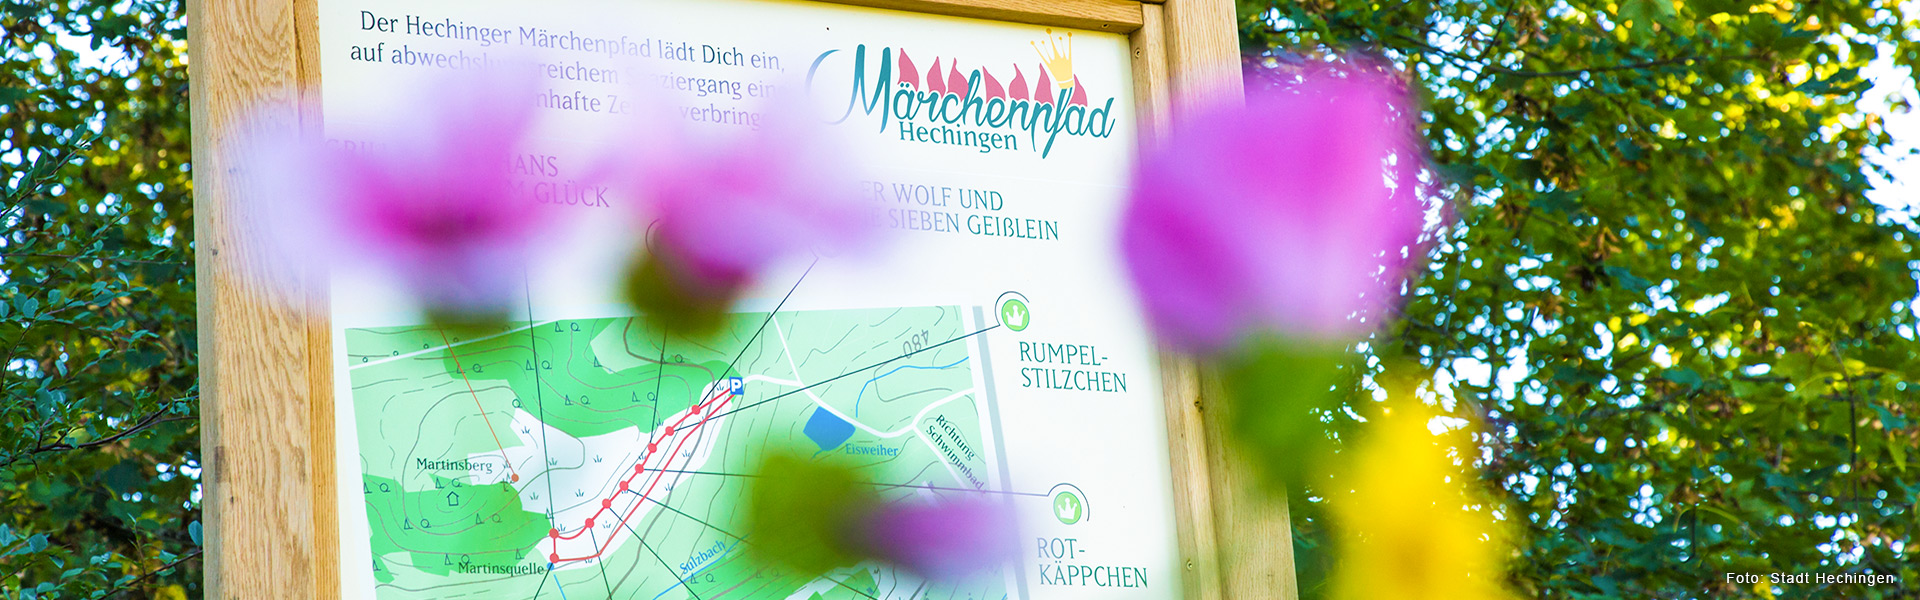 Martinsberg-Tour header